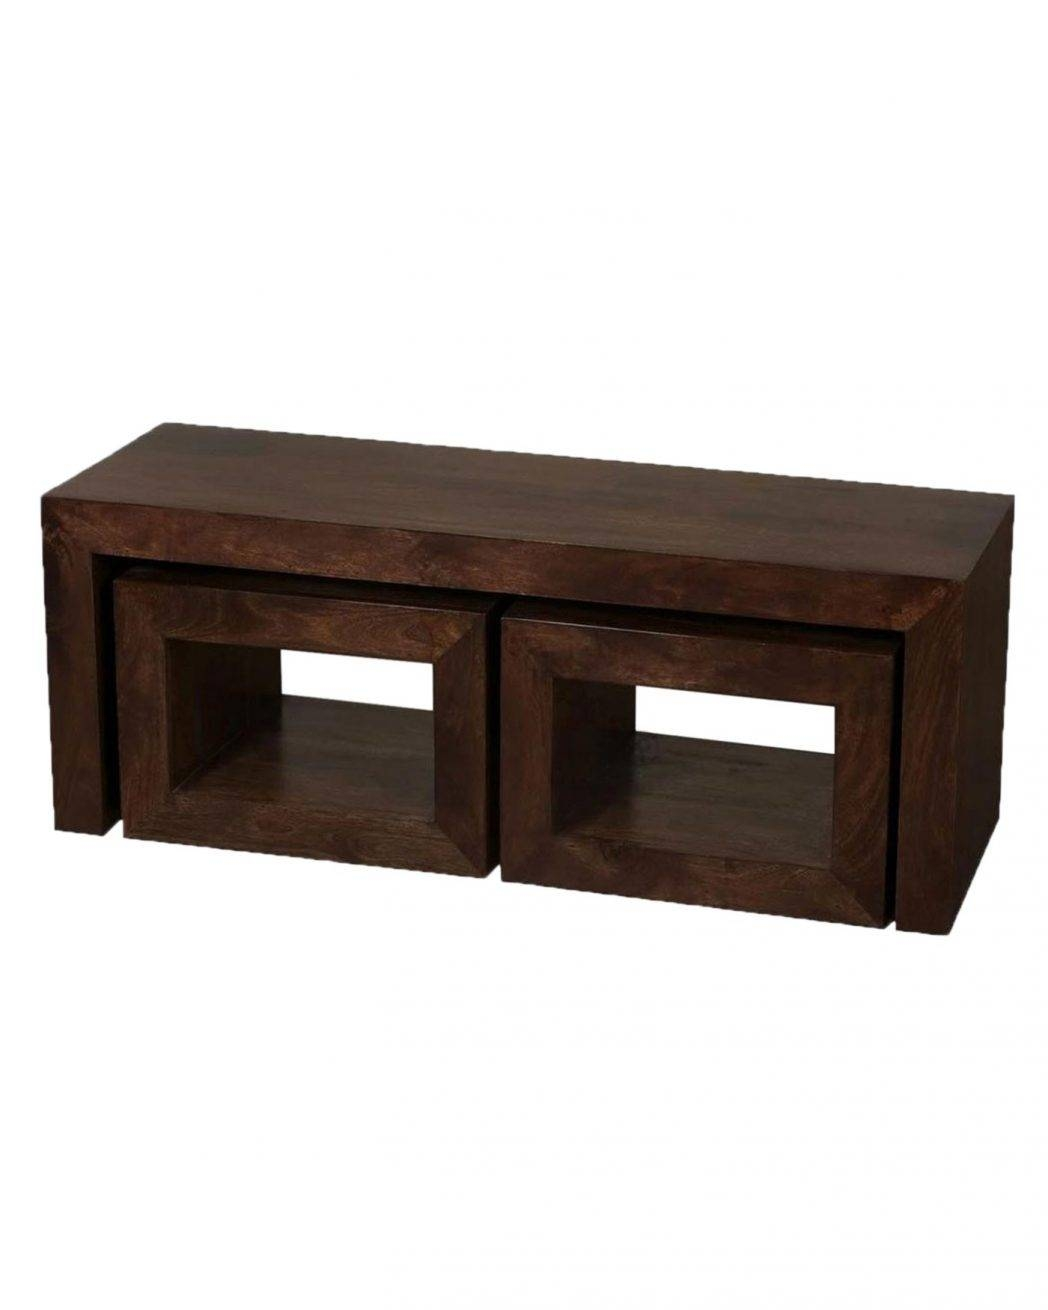 Dark Coffee Tables / Coffee Tables / Thippo intended for Dark Coffee Tables (Image 16 of 30)